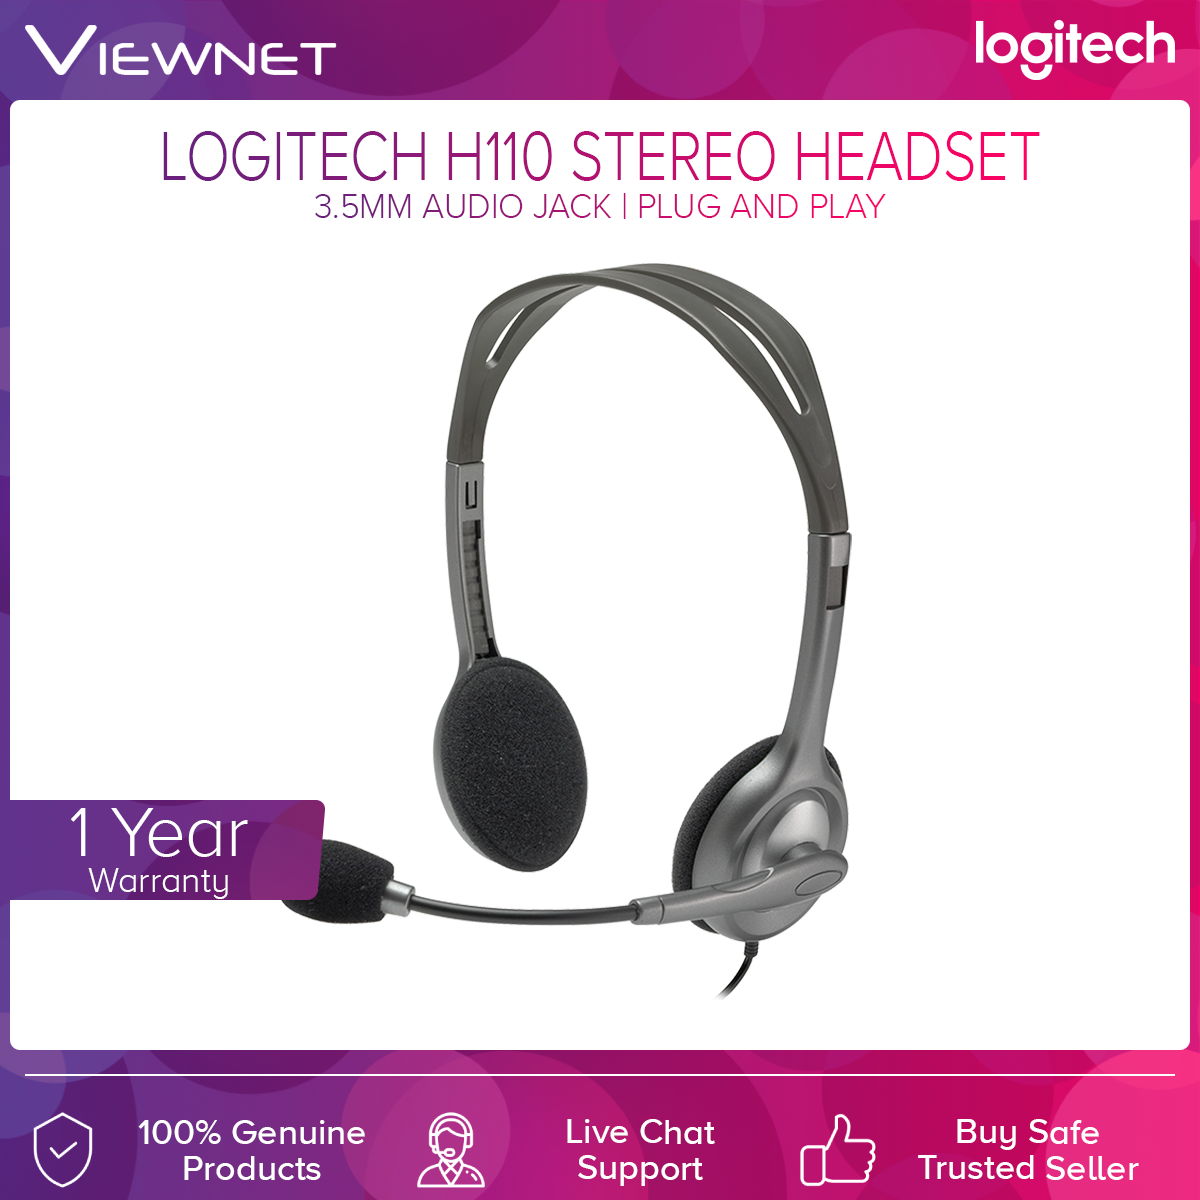 Logitech H110 Stereo Headset with 3.5mm Audio Jack, Rotating Microphone, Adjustable Headband, Cable Length 1.8m (981-000459)